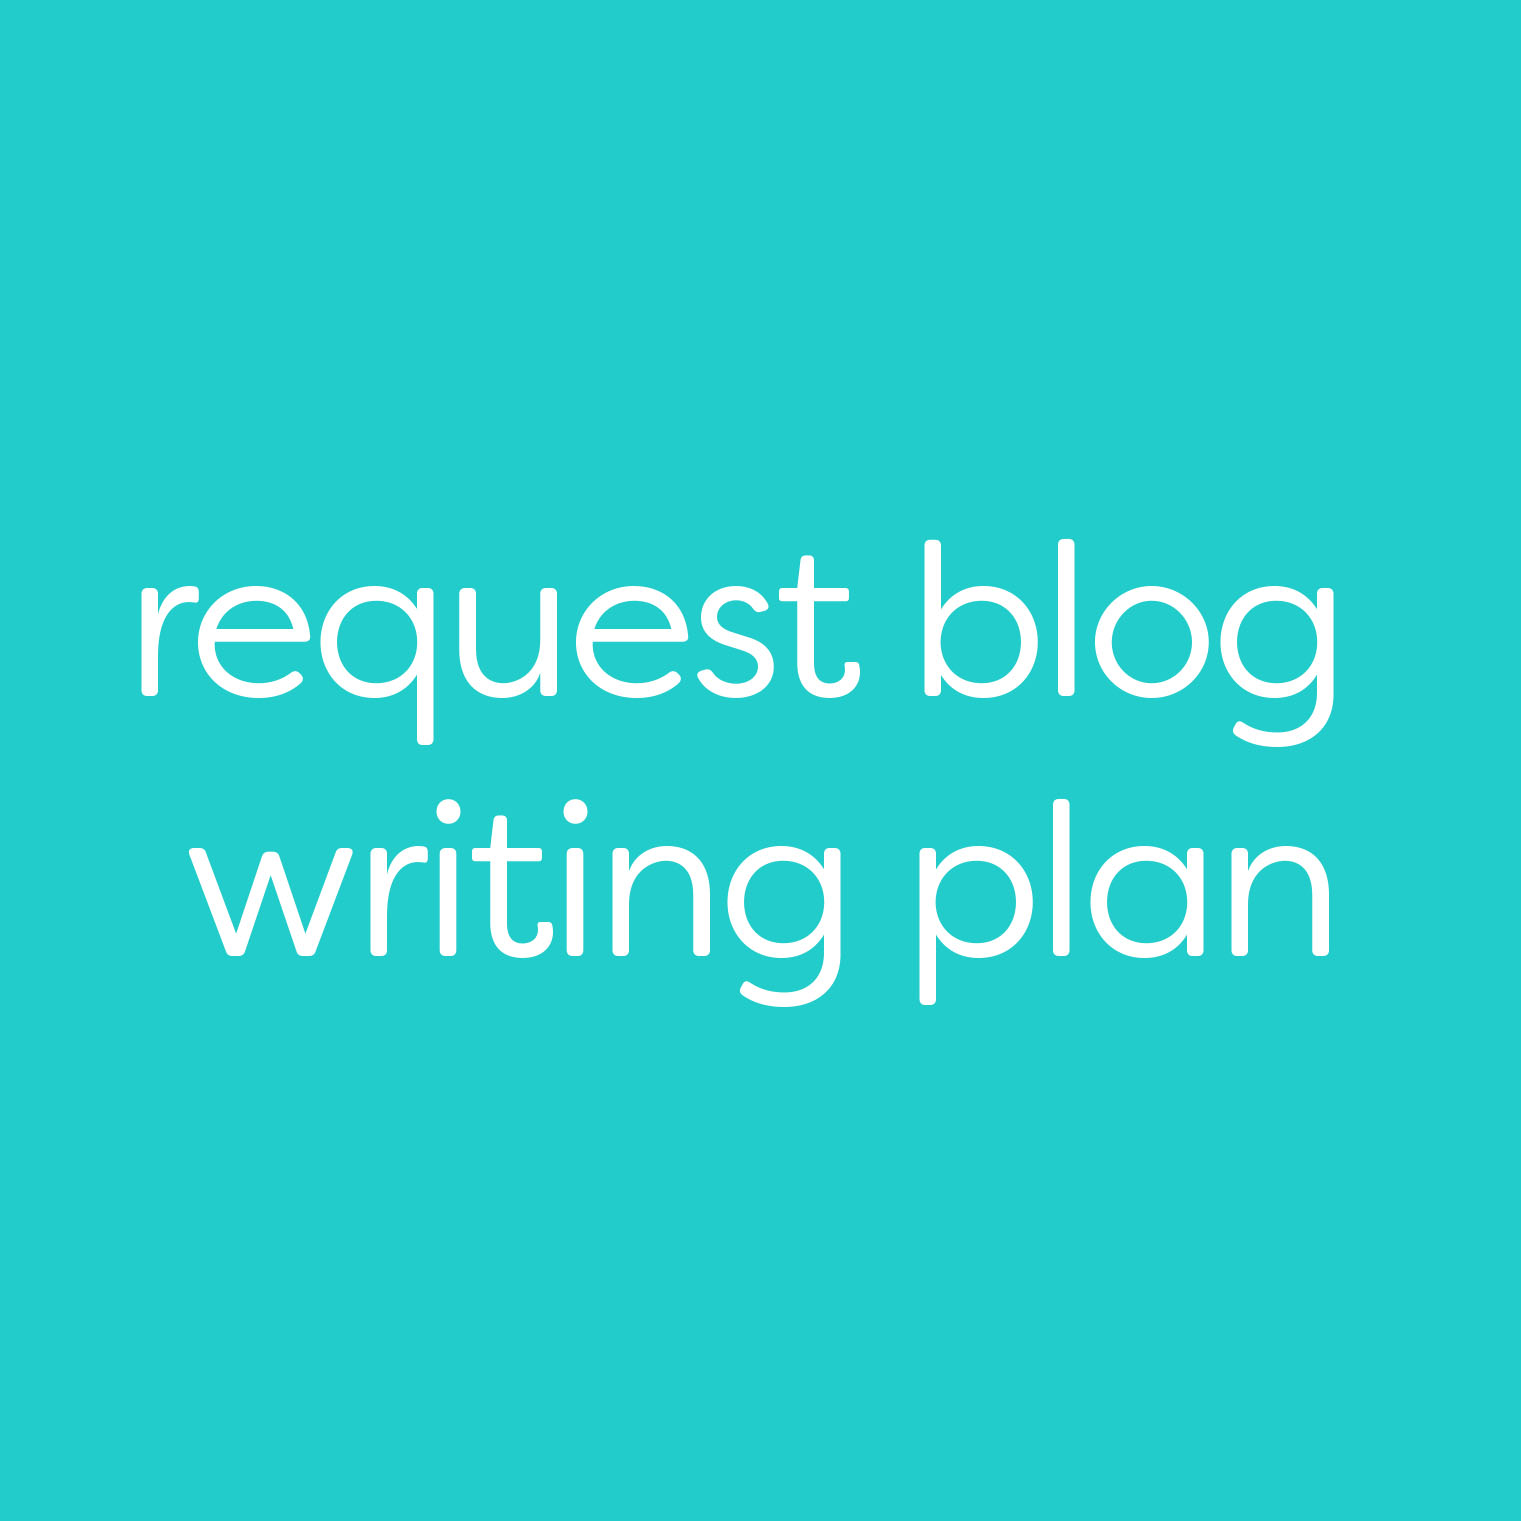 request blog writing plan.jpg